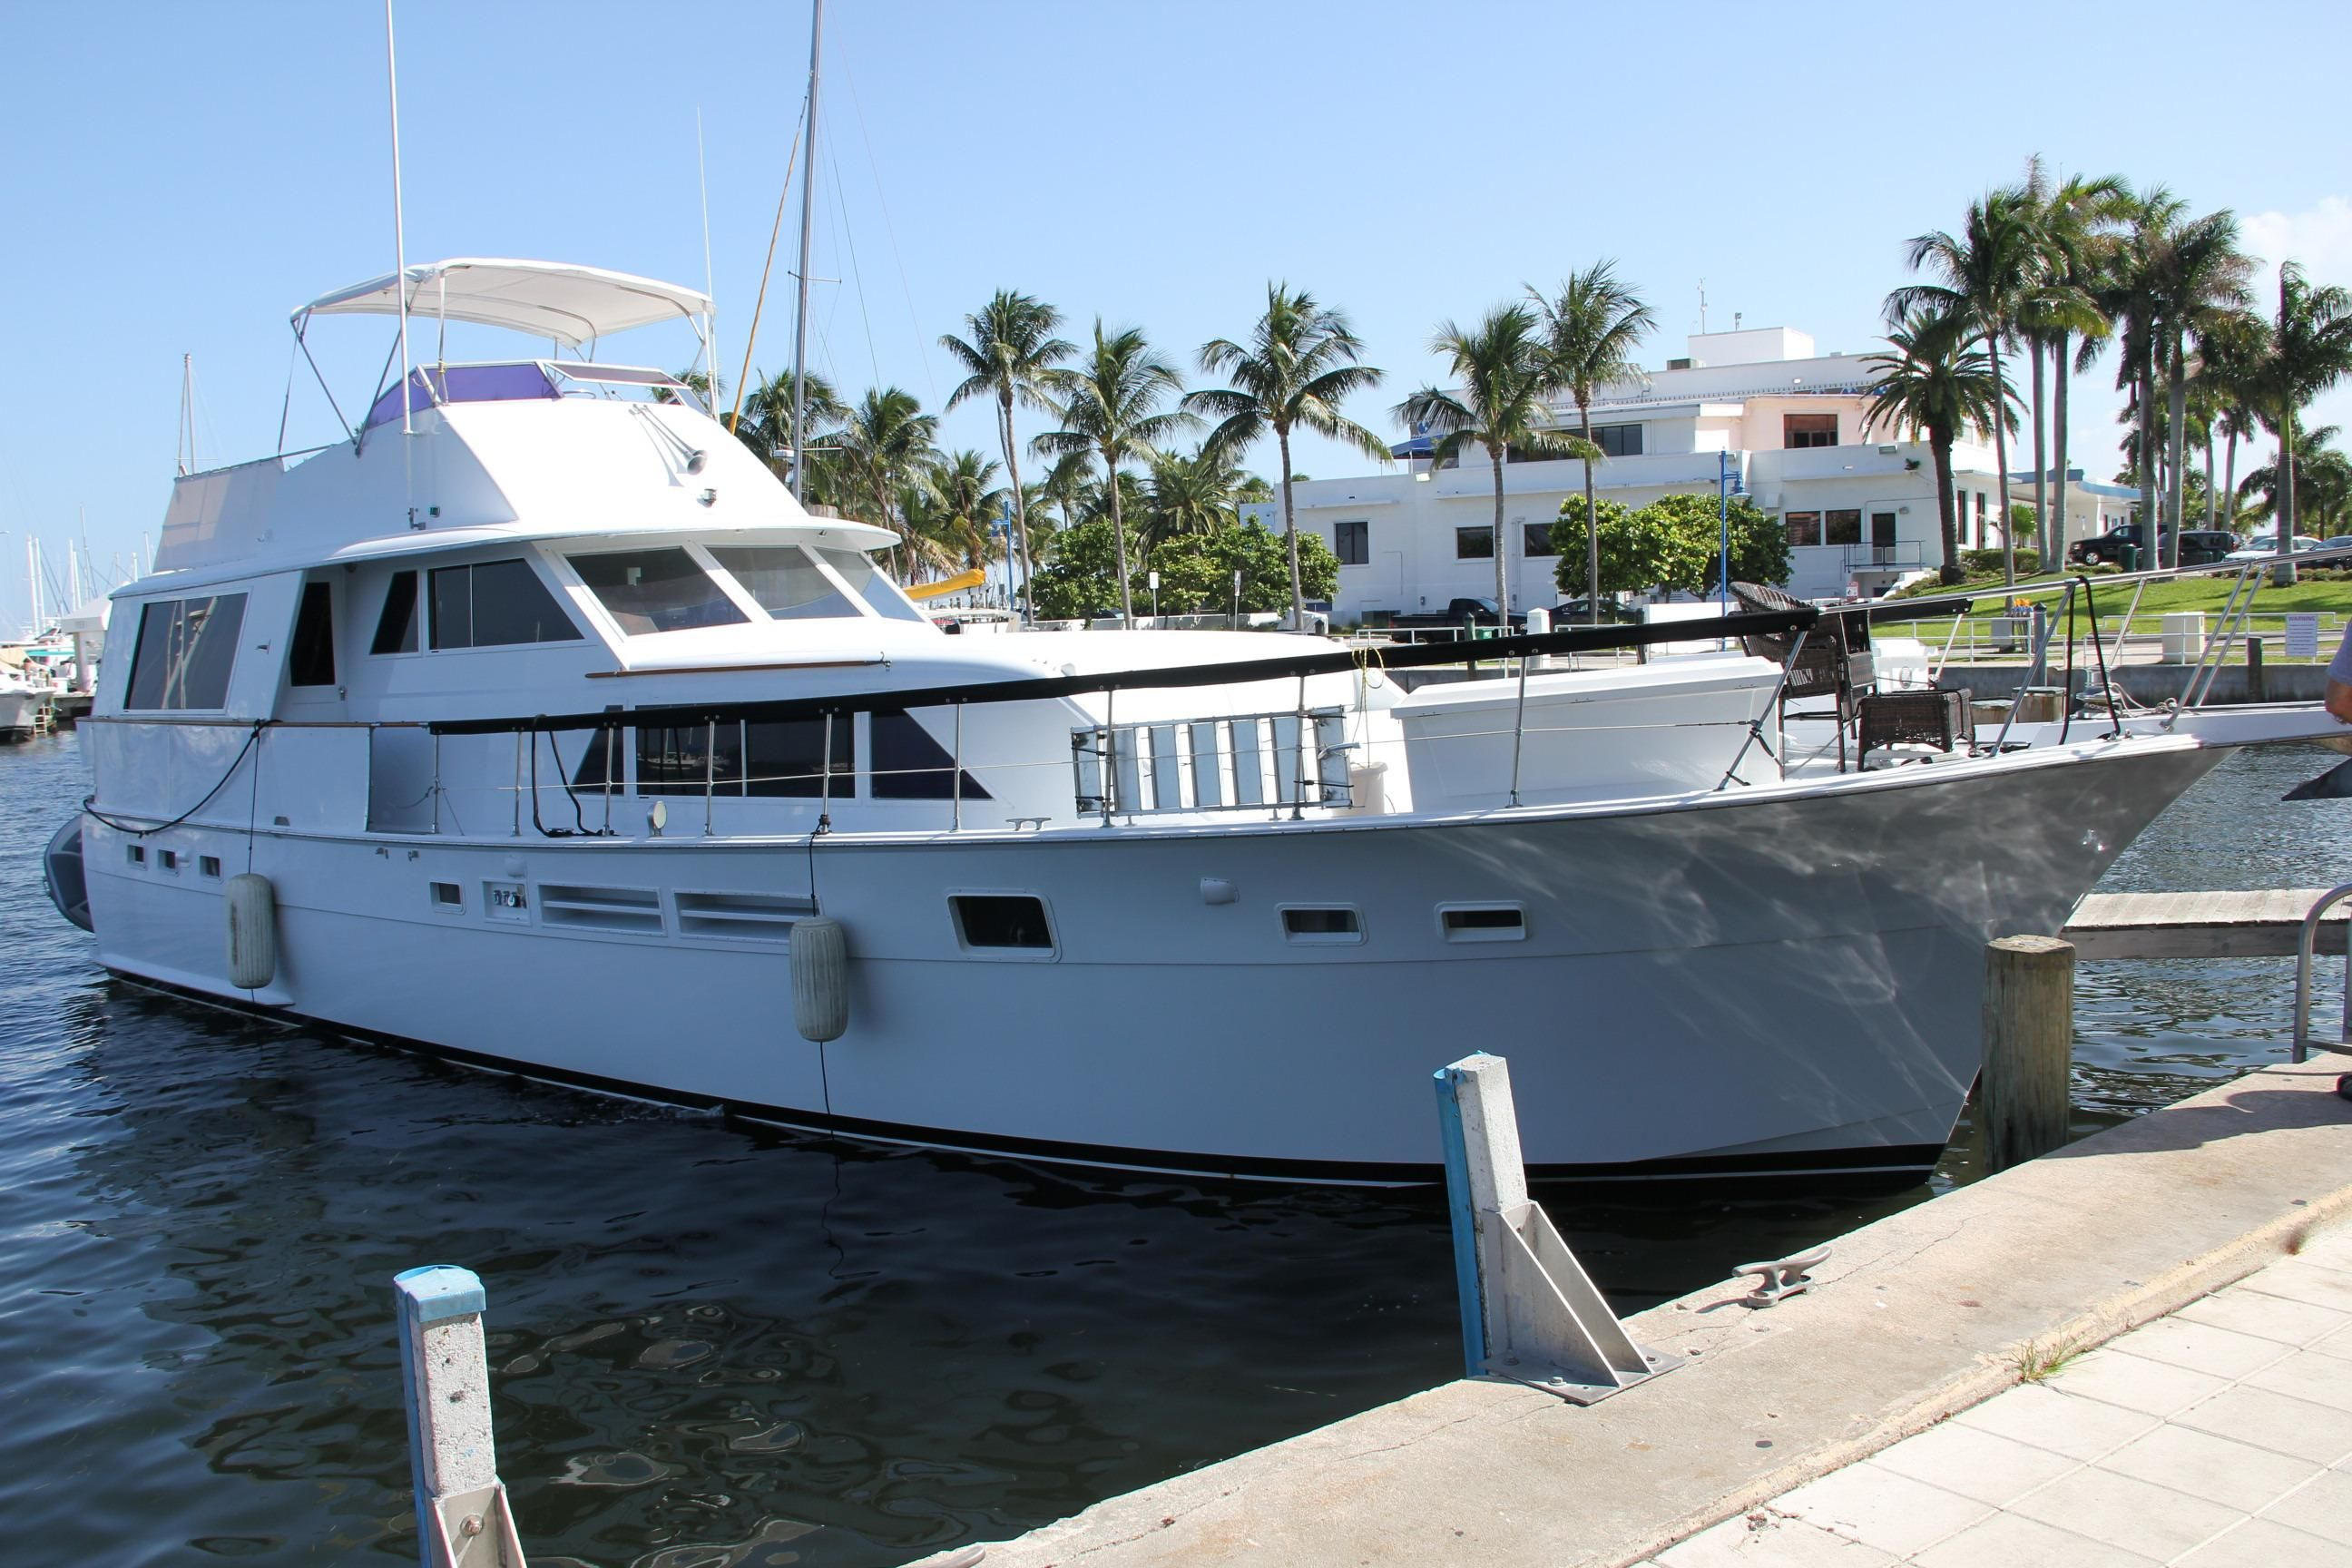 1975 hatteras 58 motor yacht power new and used boats for sale